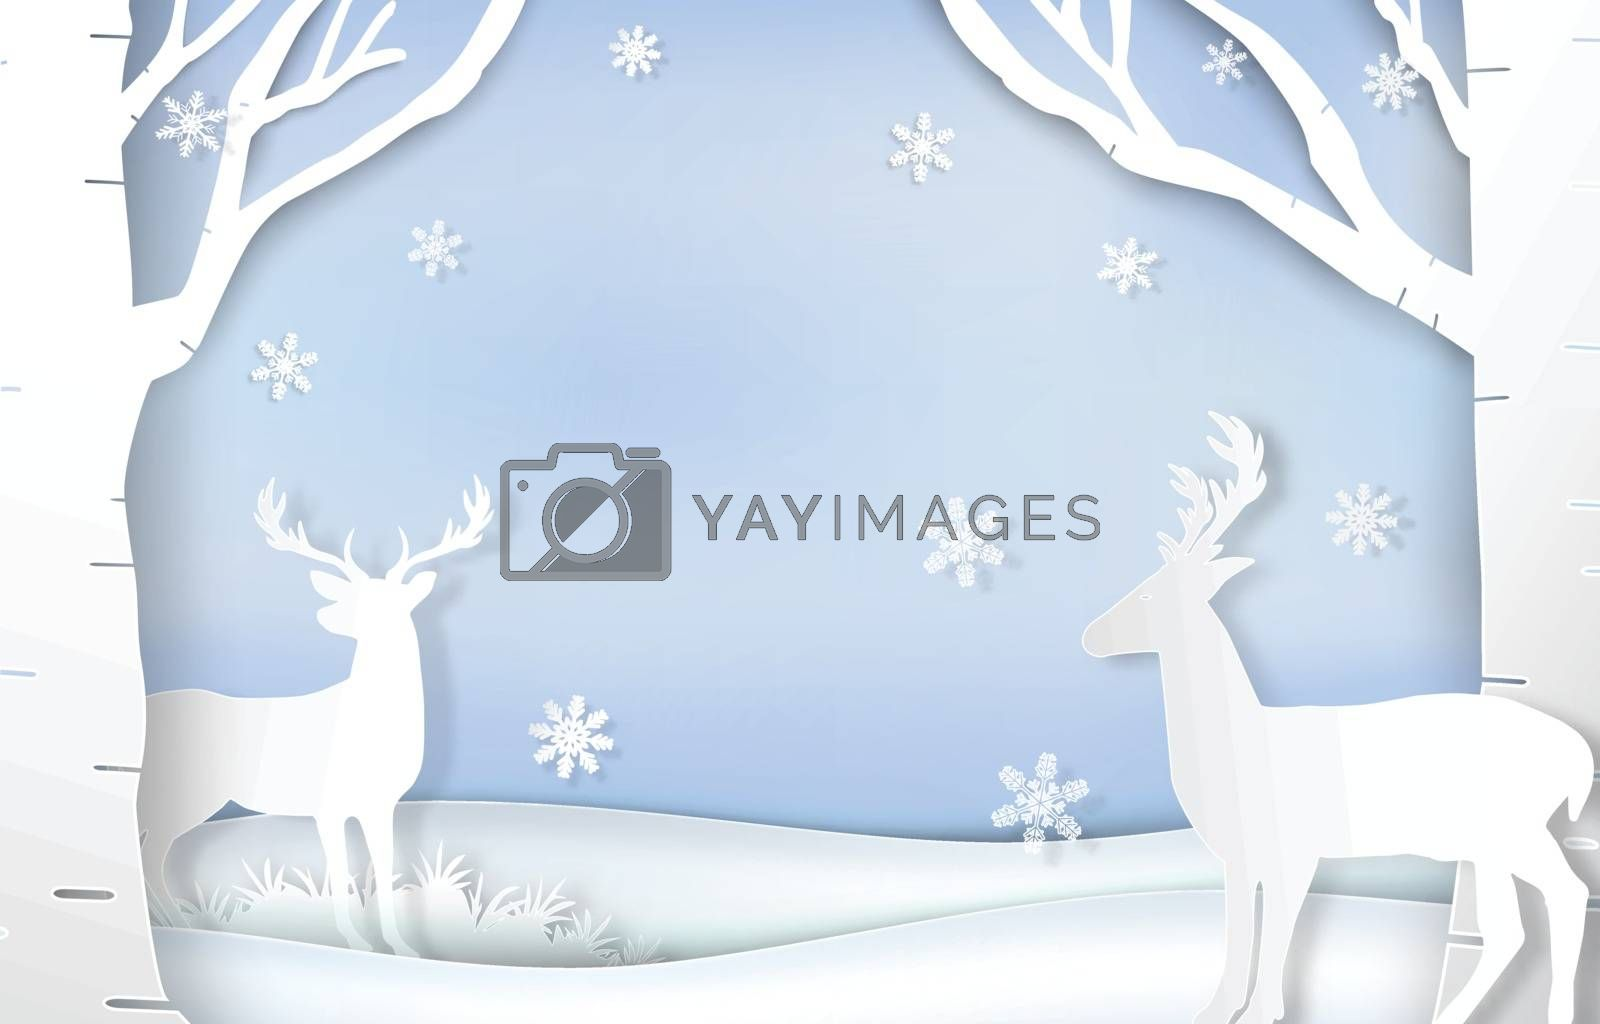 Paper art of reindeer and snowflake Christmas background illustration